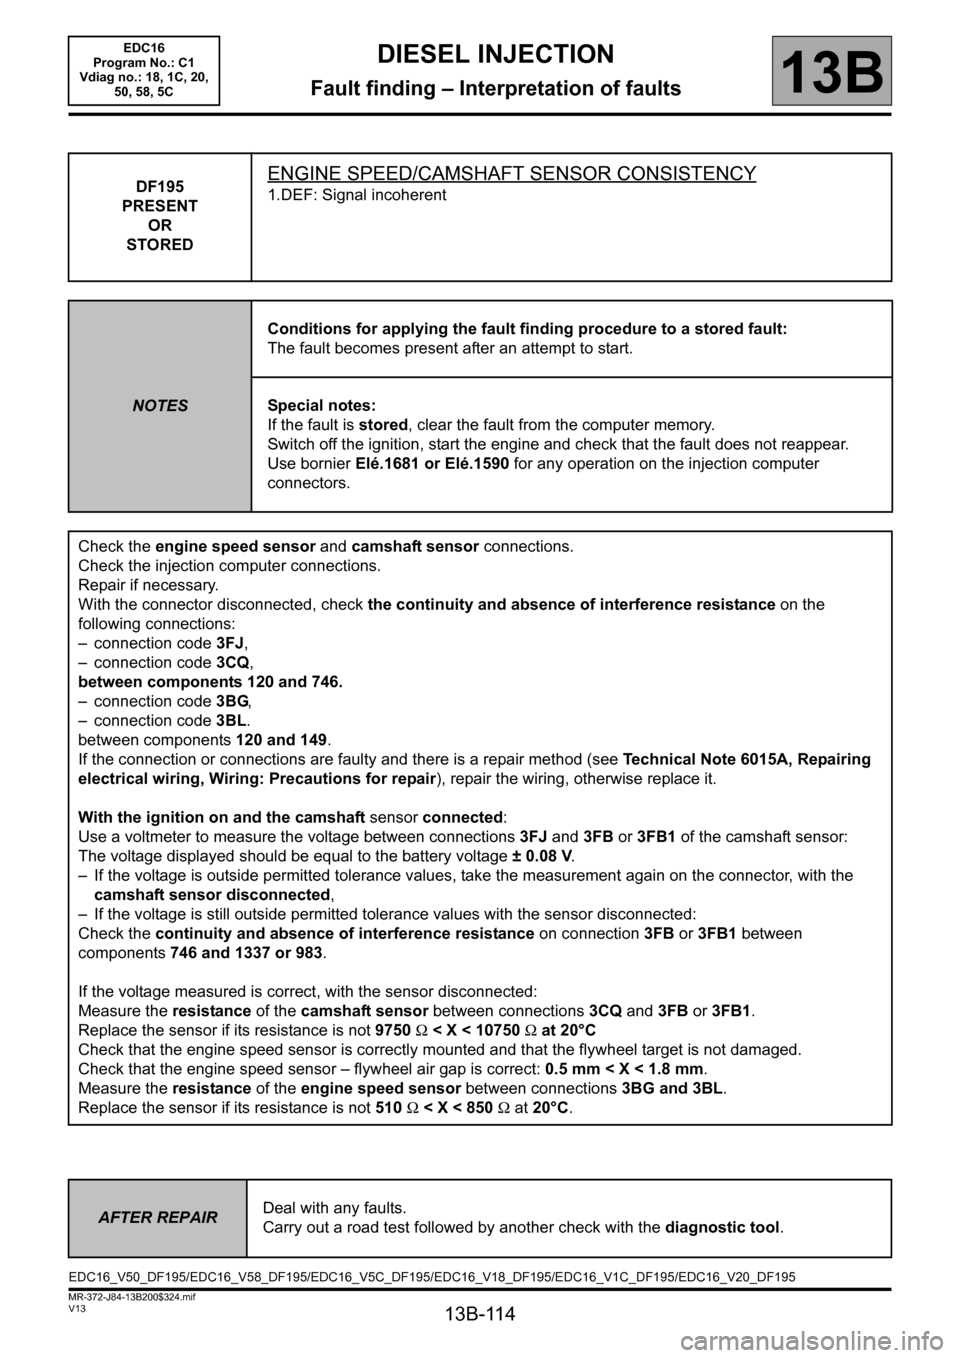 RENAULT SCENIC 2011 J95 / 3.G Engine And Peripherals EDC16 Workshop Manual, Page 114